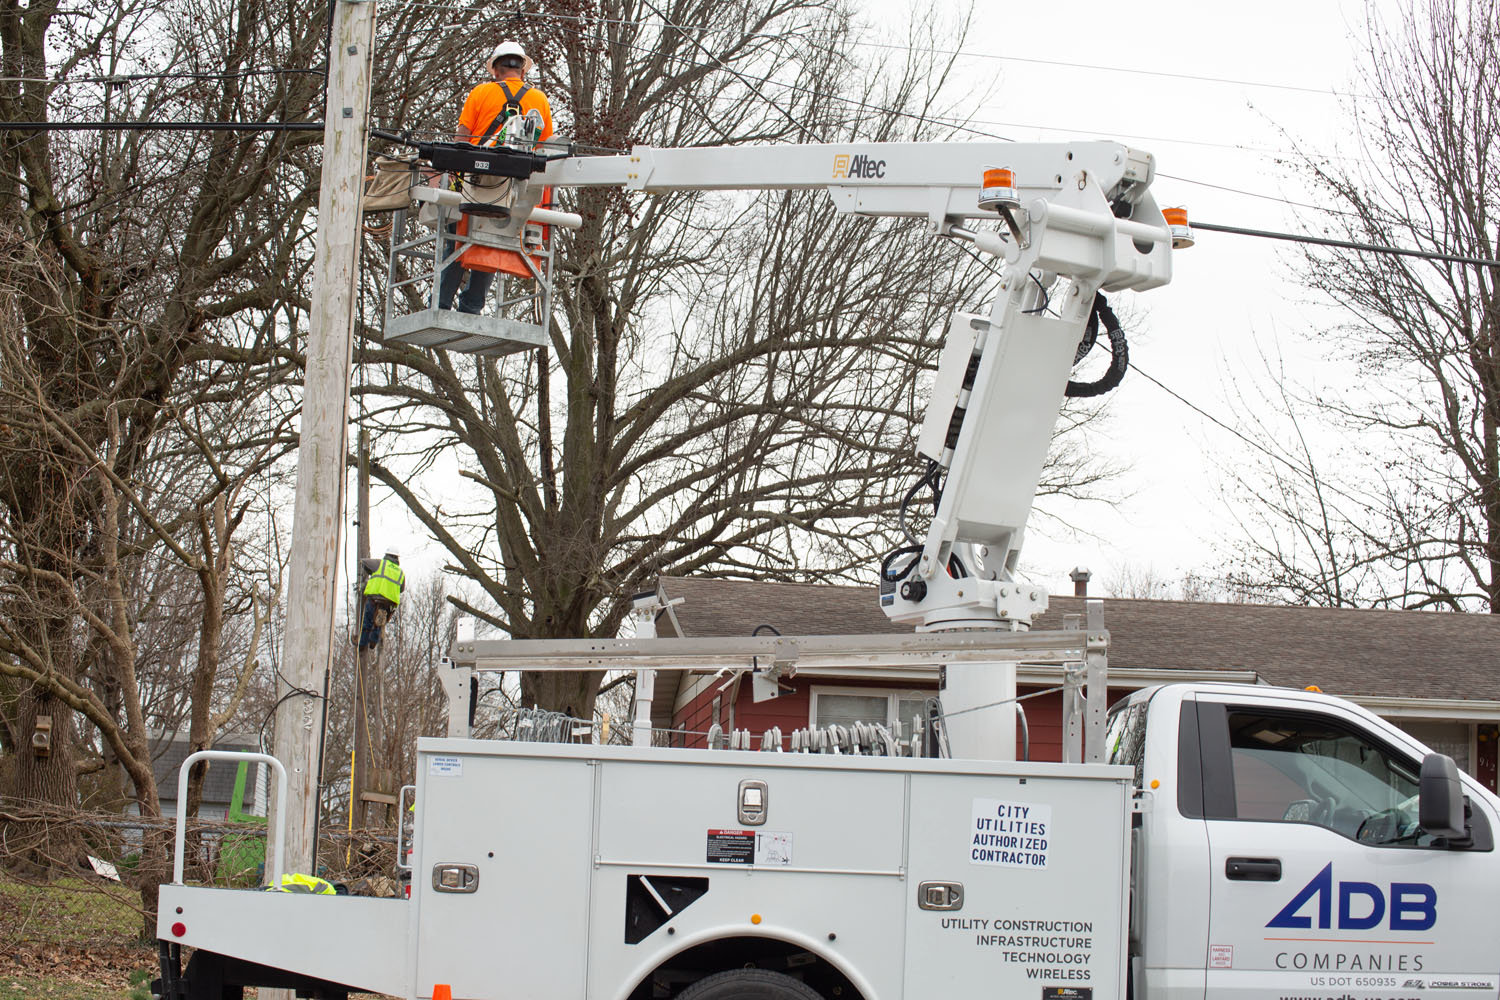 City Utilities' crews install fiber-optic lines near West Norton Road as part of a $120 million fiber network expansion.